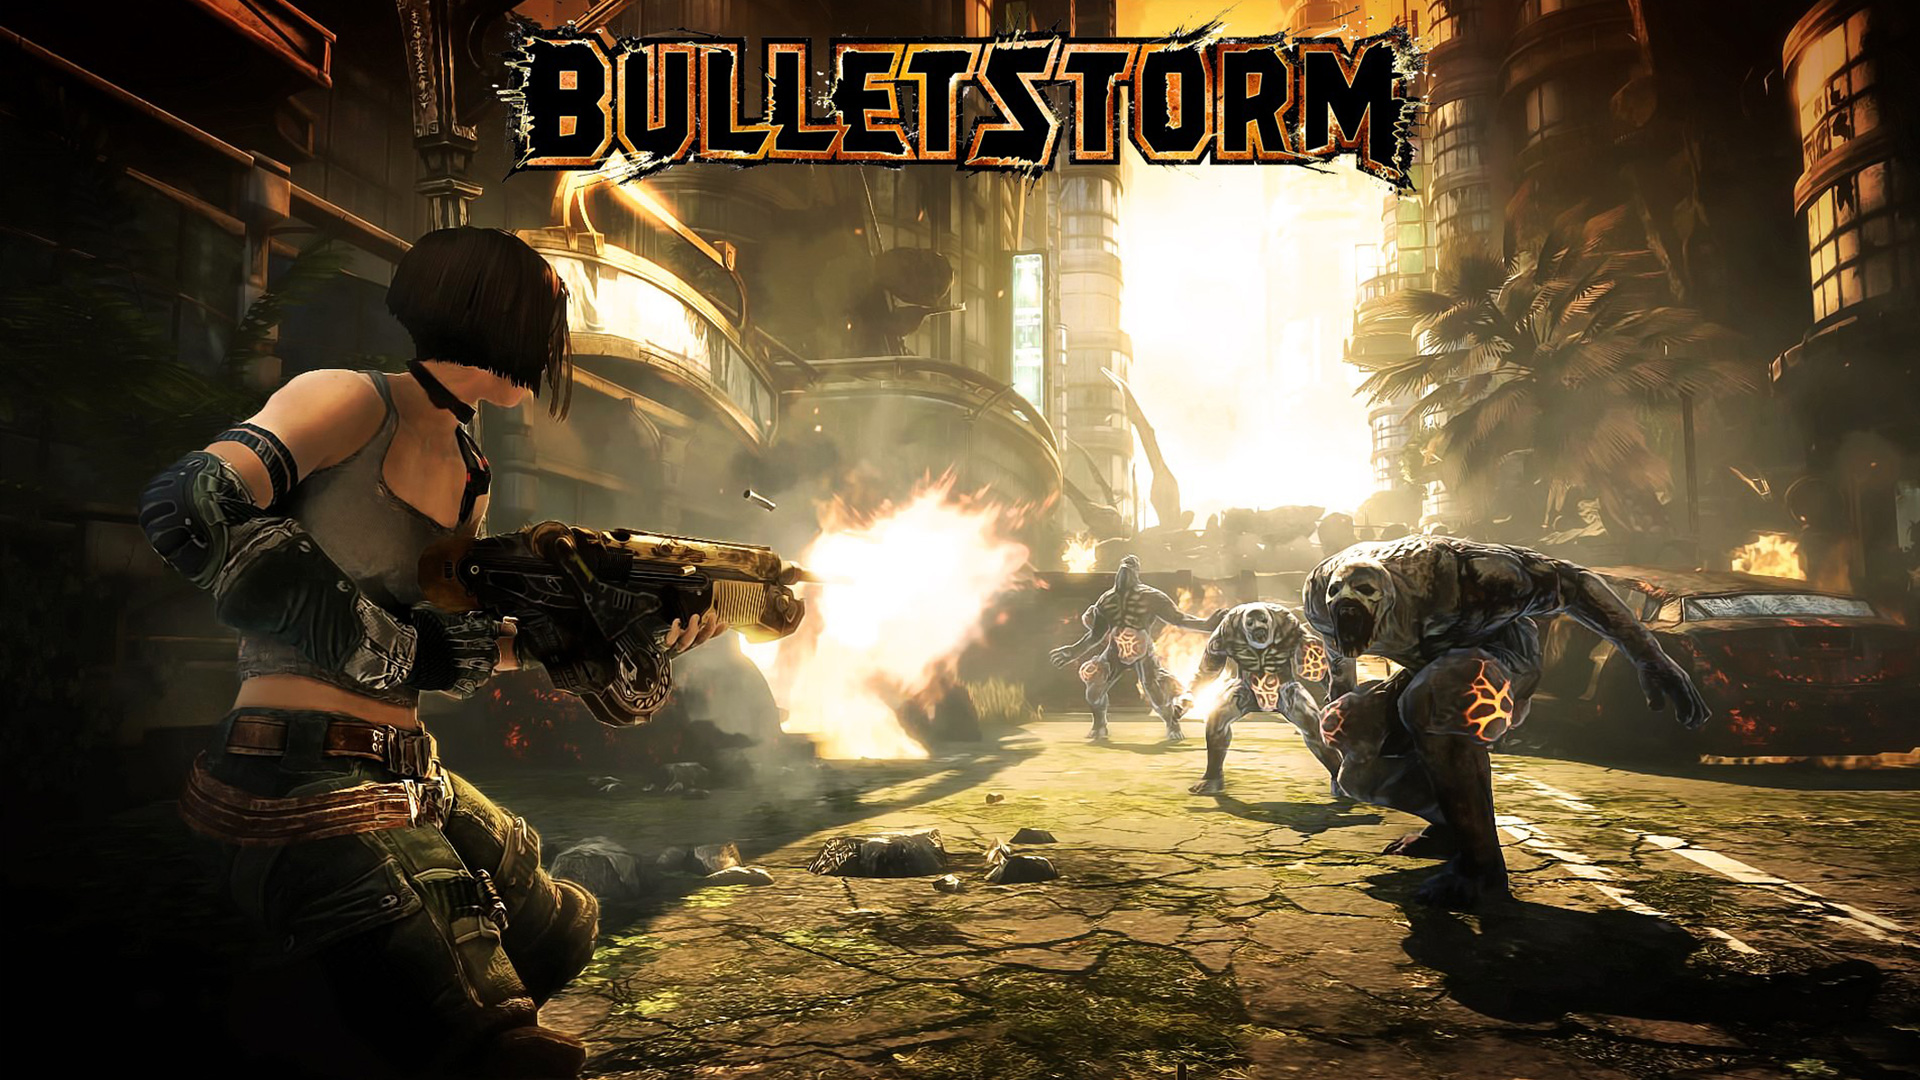 Bulletstorm Wallpaper in 1920x1080